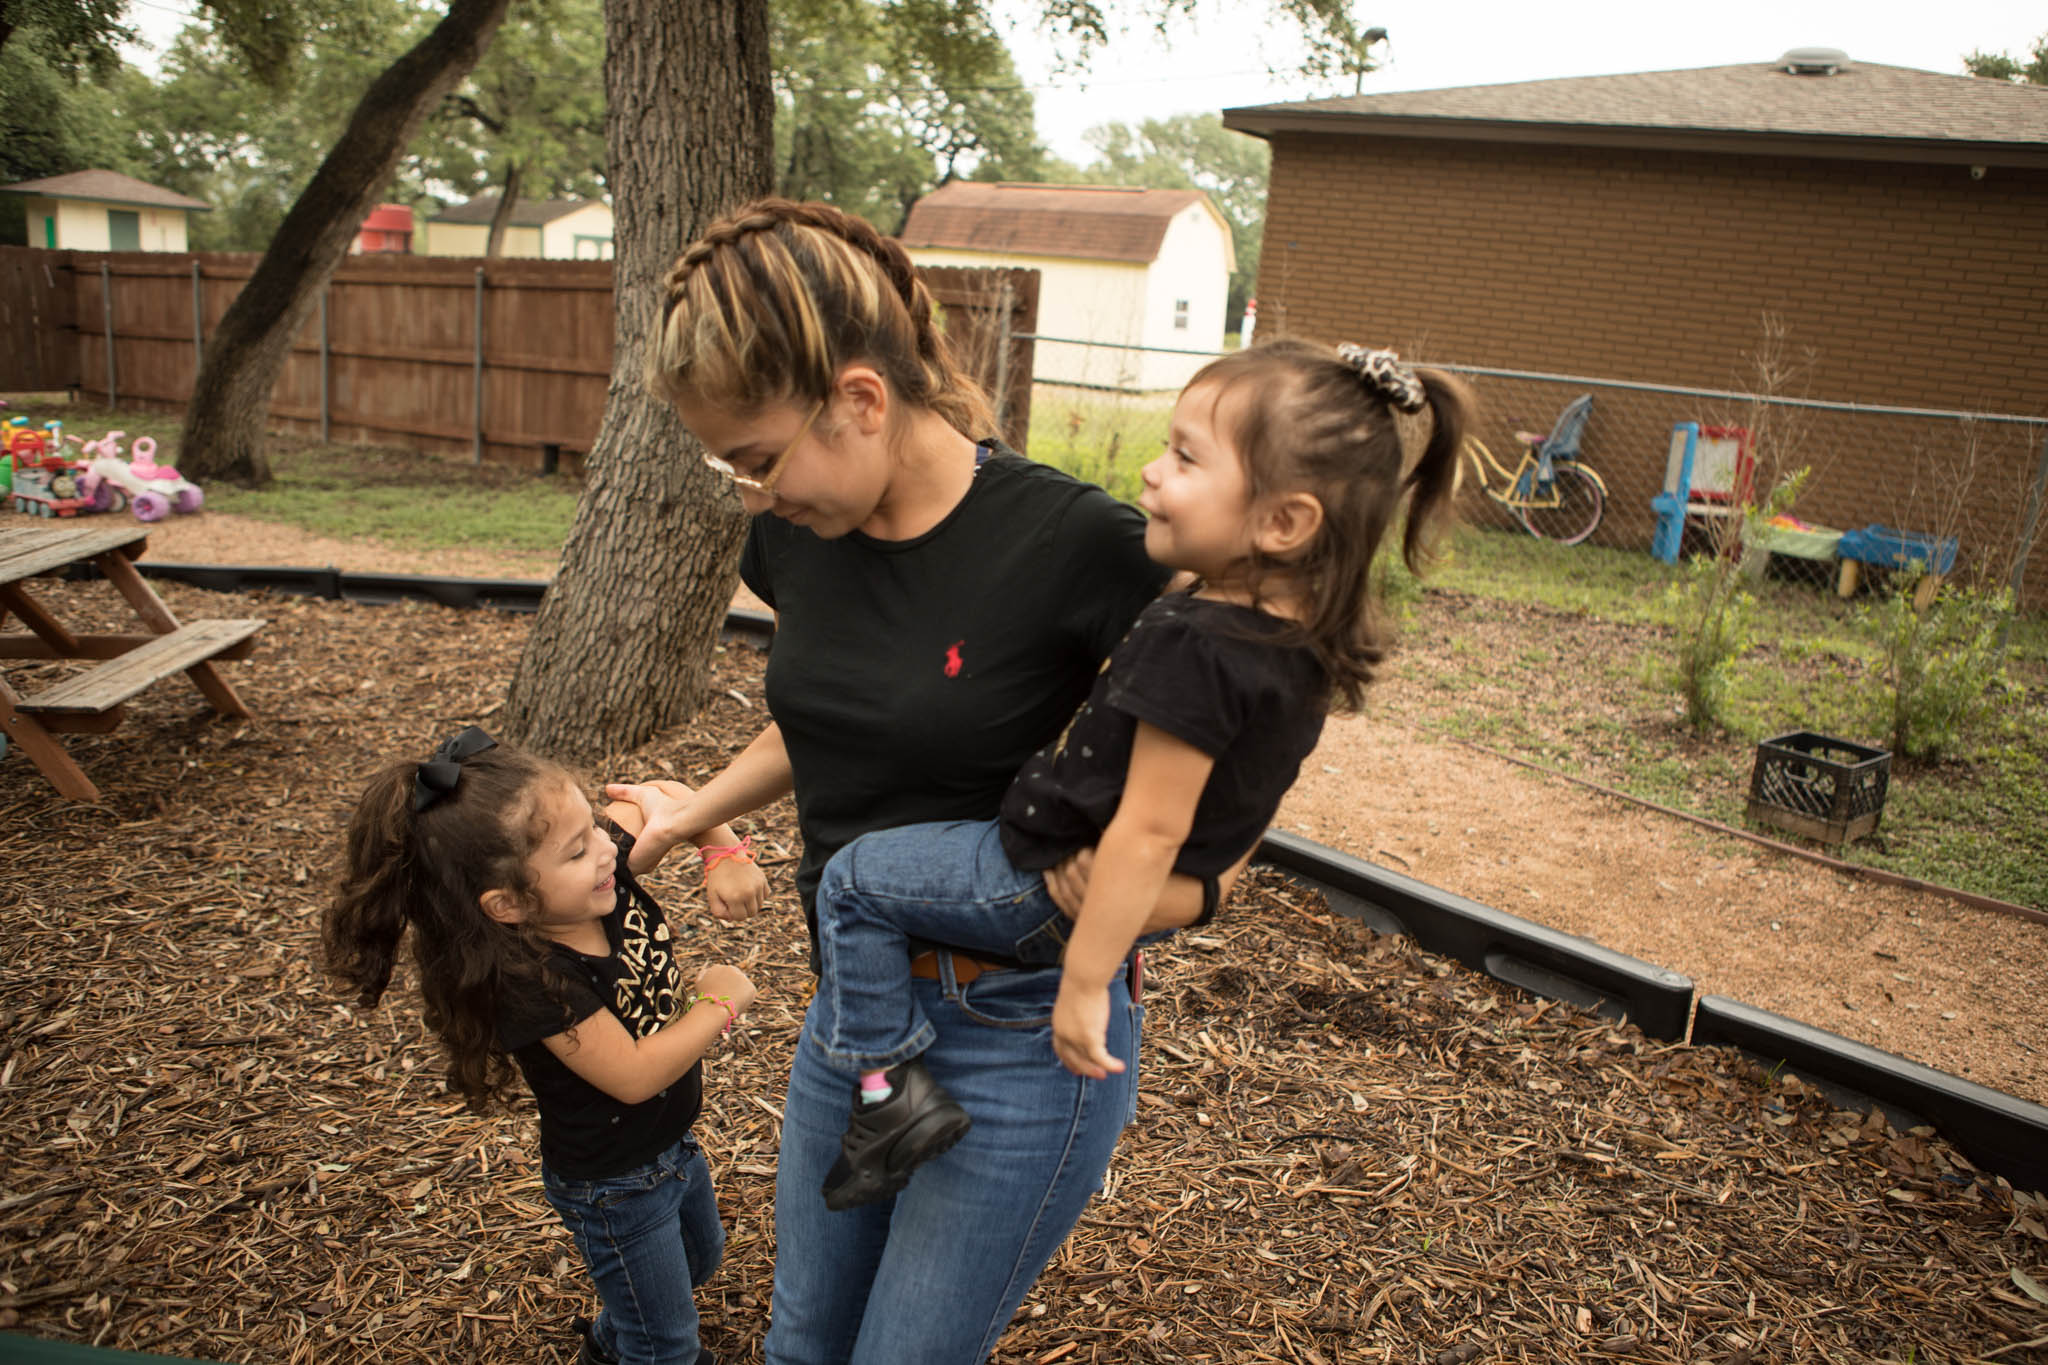 Briana Zapata, 17, (center) shares a laugh on the playground with her daughters Natalie, 3, (left) and Daniella, 1, at the SJRC Texas Pregnant Parenting Teen Program.